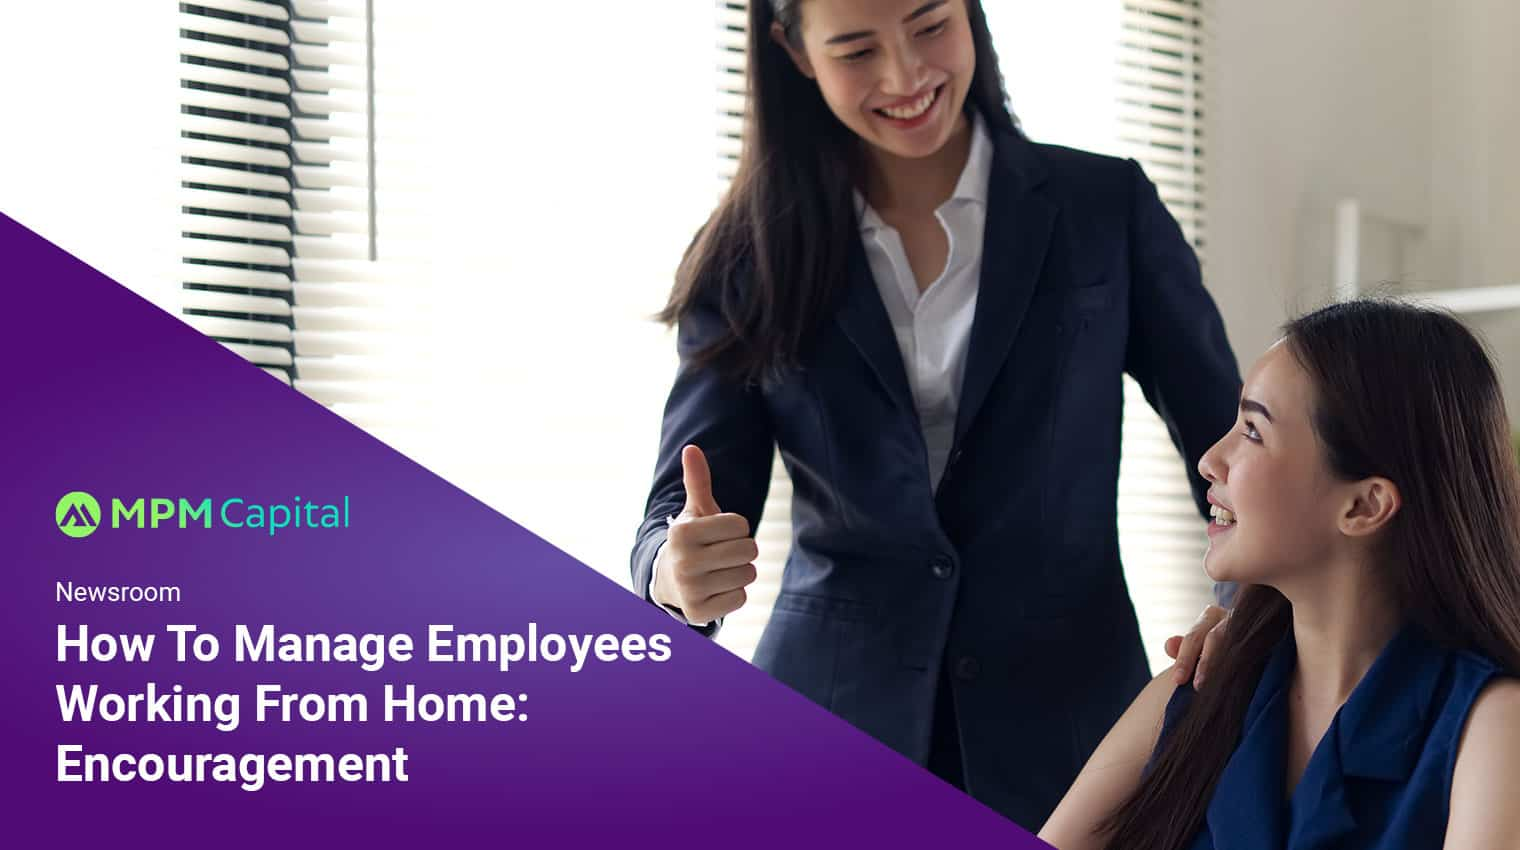 How-To-Manage-Employees-When-Working-From-Home-Encouragement-MPM-Capital-Singapore